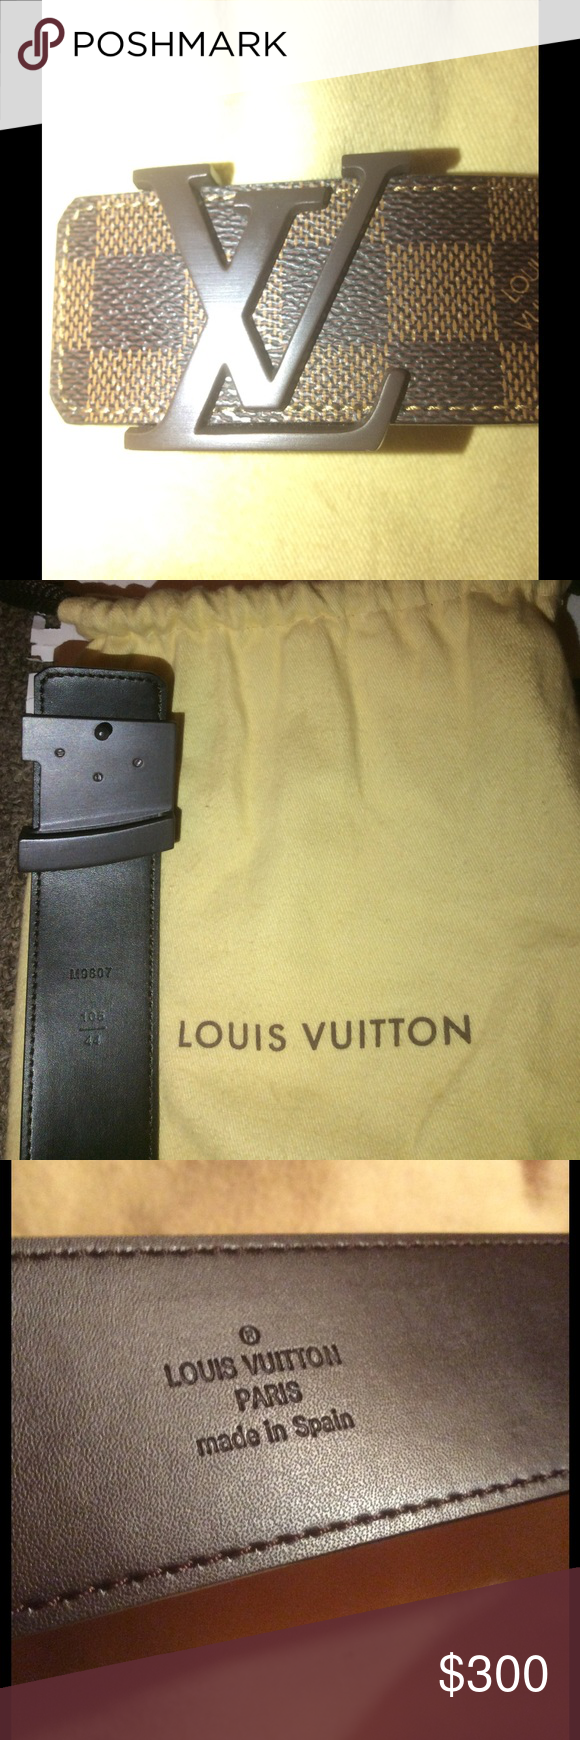 05827d283200 Brand New Loui Vuitton Ebene Damier Belt Brand New Loui Vuitton Damier Belt.  100% Authentic. Satisfaction guaranteed or money back. This belt is size  105cm ...